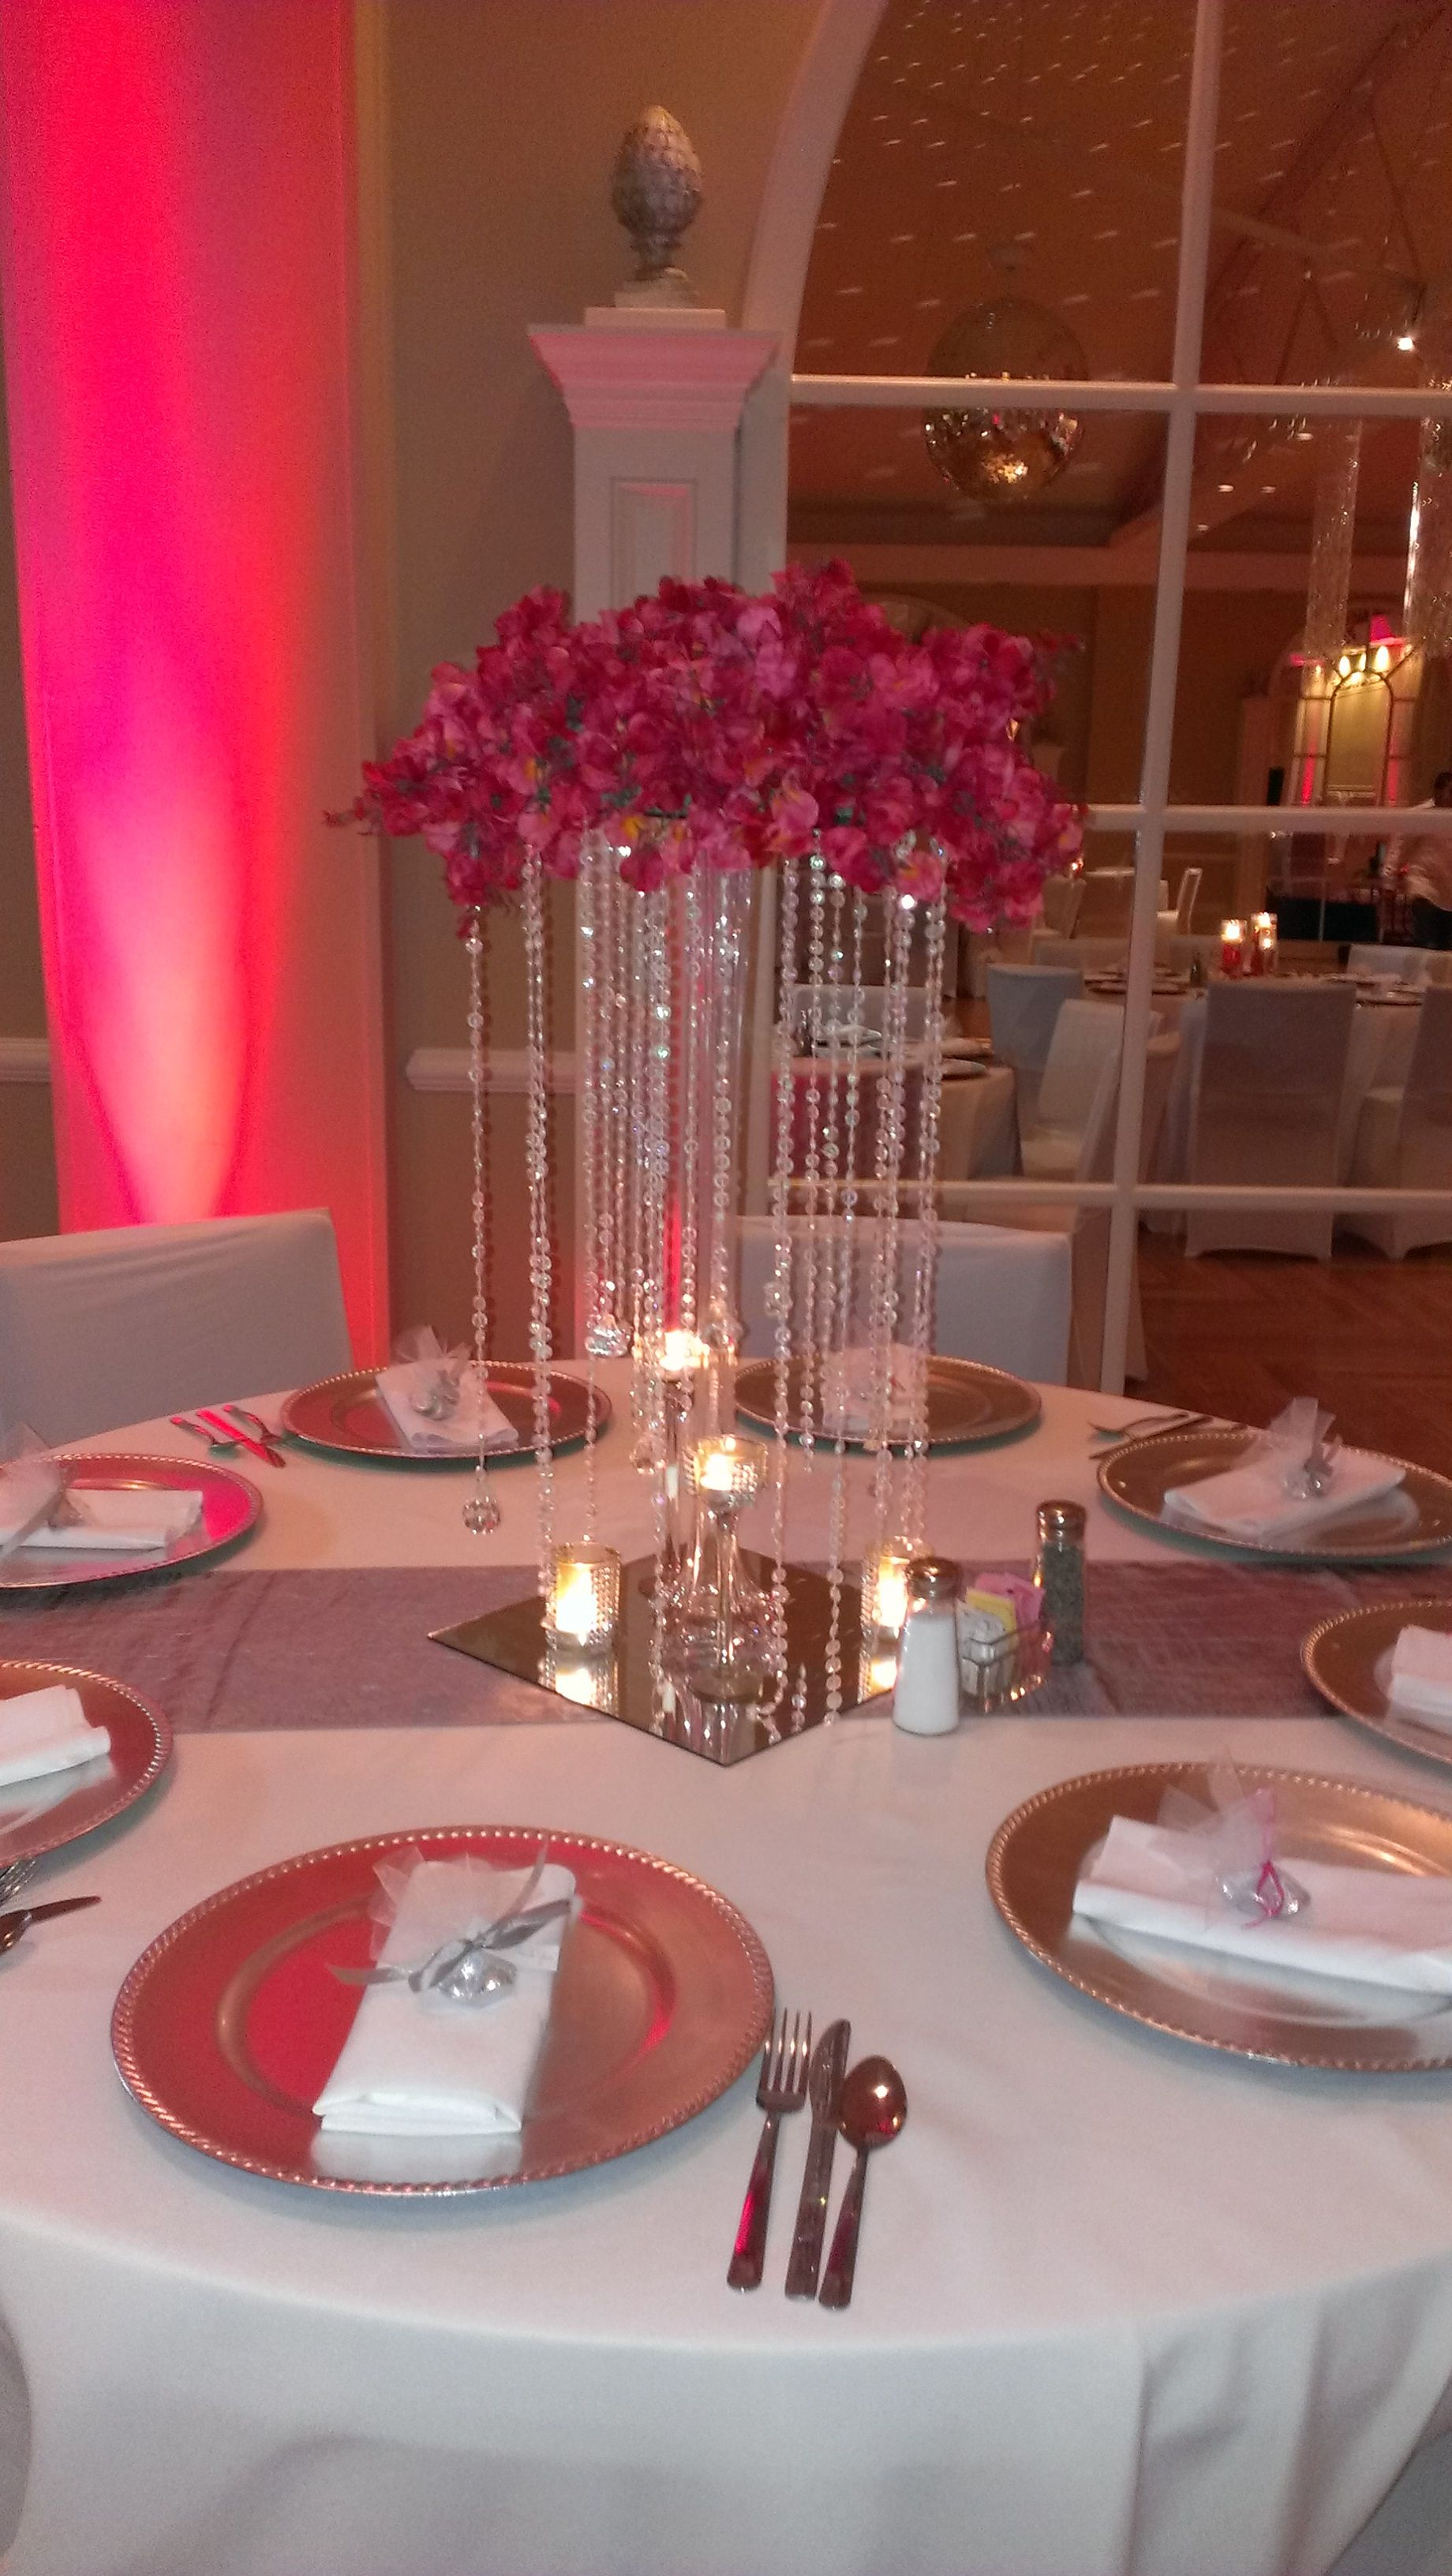 Crystal Wedding Centerpiece Arrangement Tall Lavish Elegant Centerpieces Bling Red And White